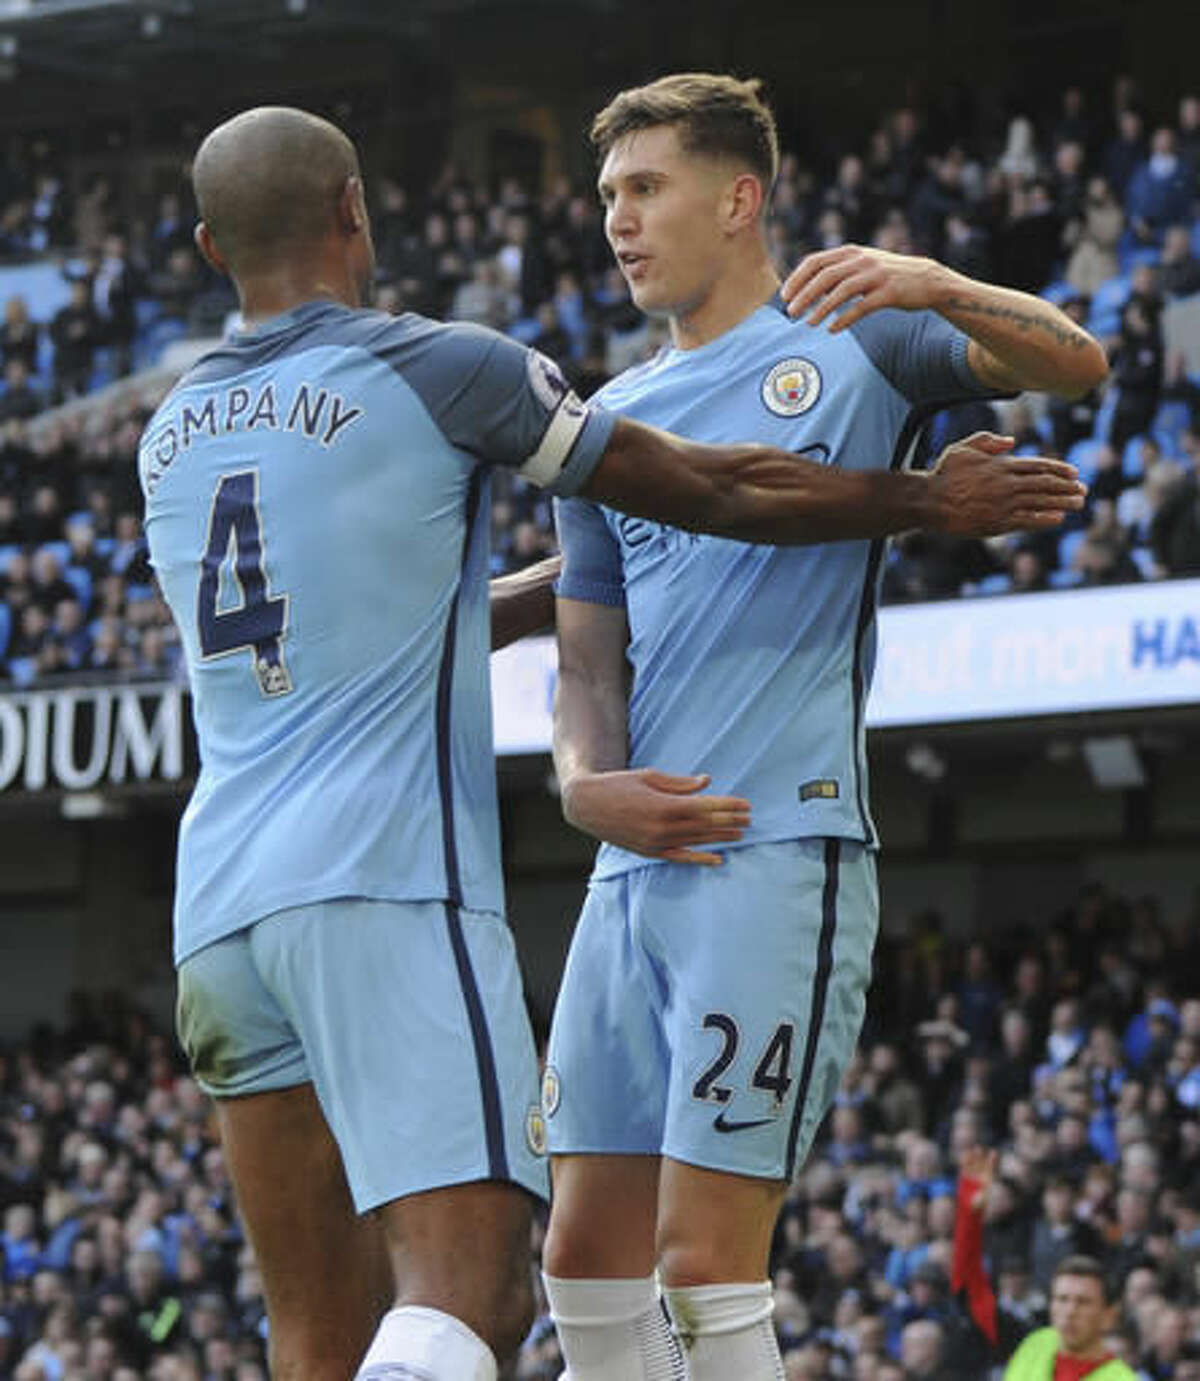 Manchester City's John Stones, right, celebrates with Manchester City's Vincent Kompany before his goal was disallowed for offside, during the English Premier League soccer match between Manchester City and Southampton at the Etihad Stadium in Manchester, England, Sunday, Oct. 23, 2016. (AP Photo/Rui Vieira)